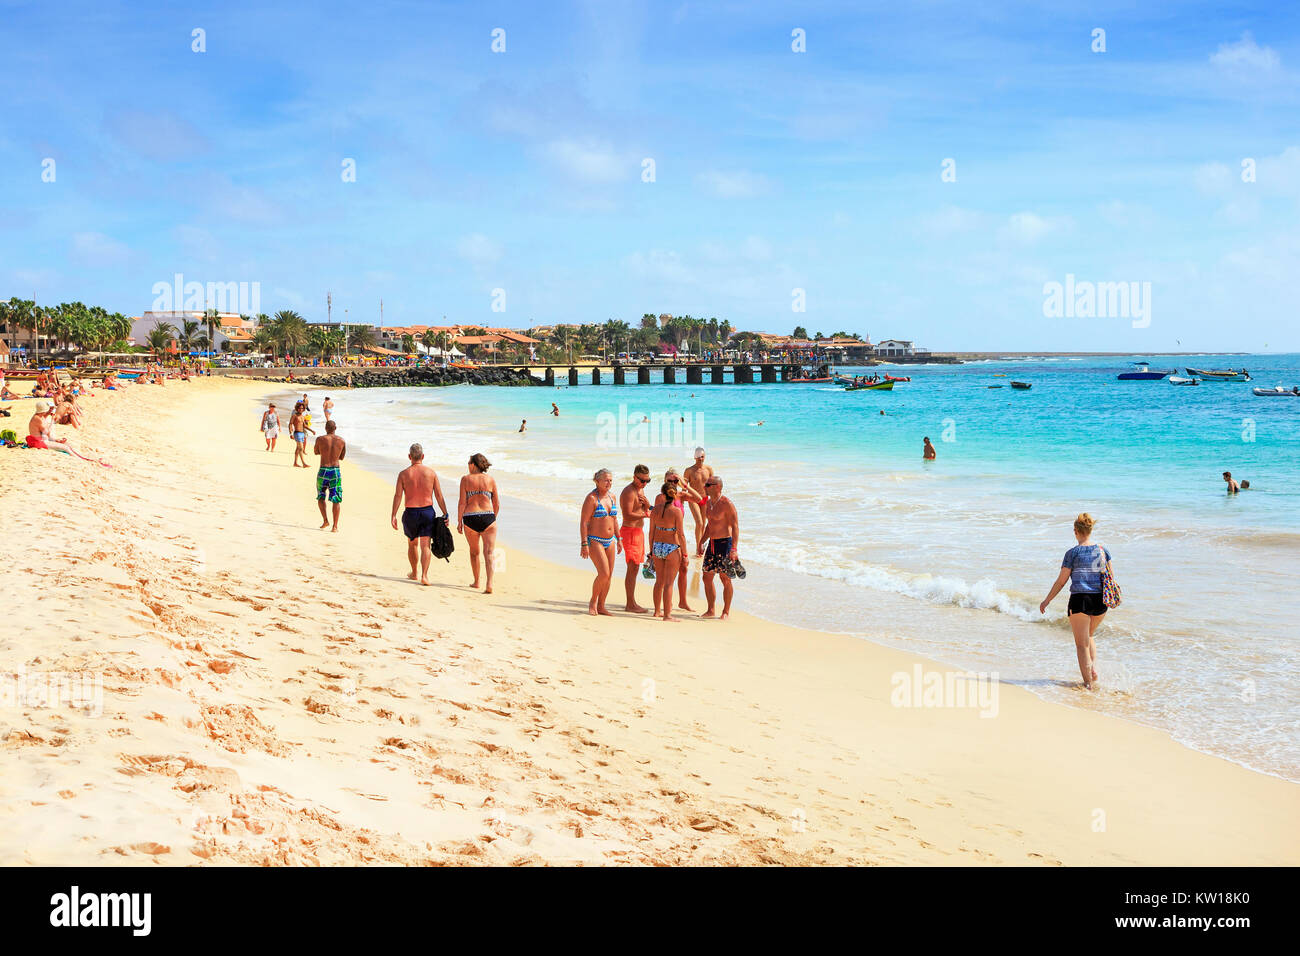 Tourists and holidaymakers on the public beach at Santa Maria, Cape Verde, Africa - Stock Image